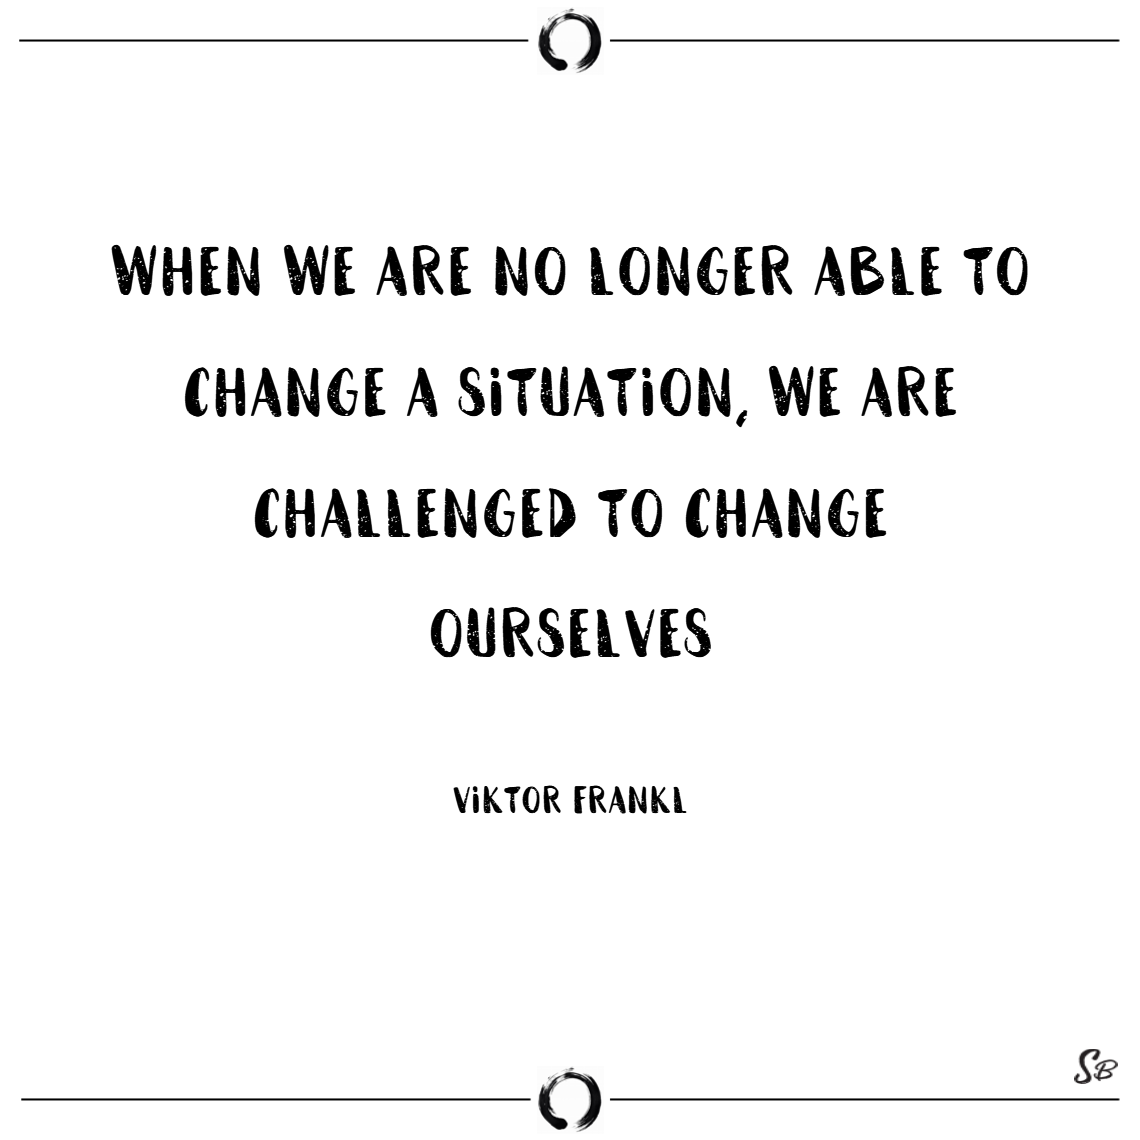 When we are no longer able to change a situation, we are challenged to change ourselves. – viktor frankl